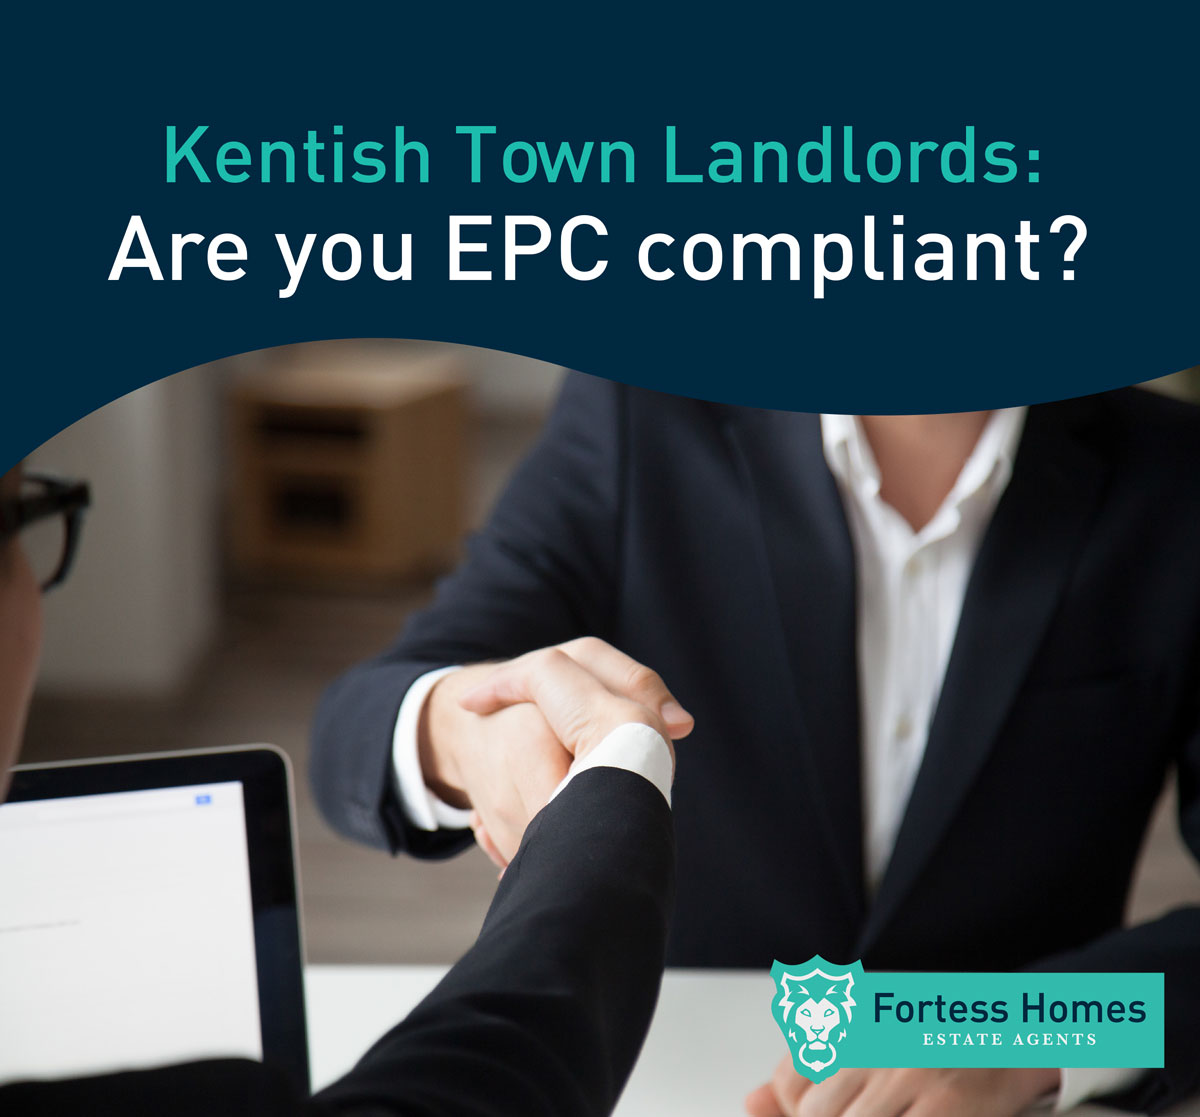 Kentish Town Landlords: Are you EPC compliant?